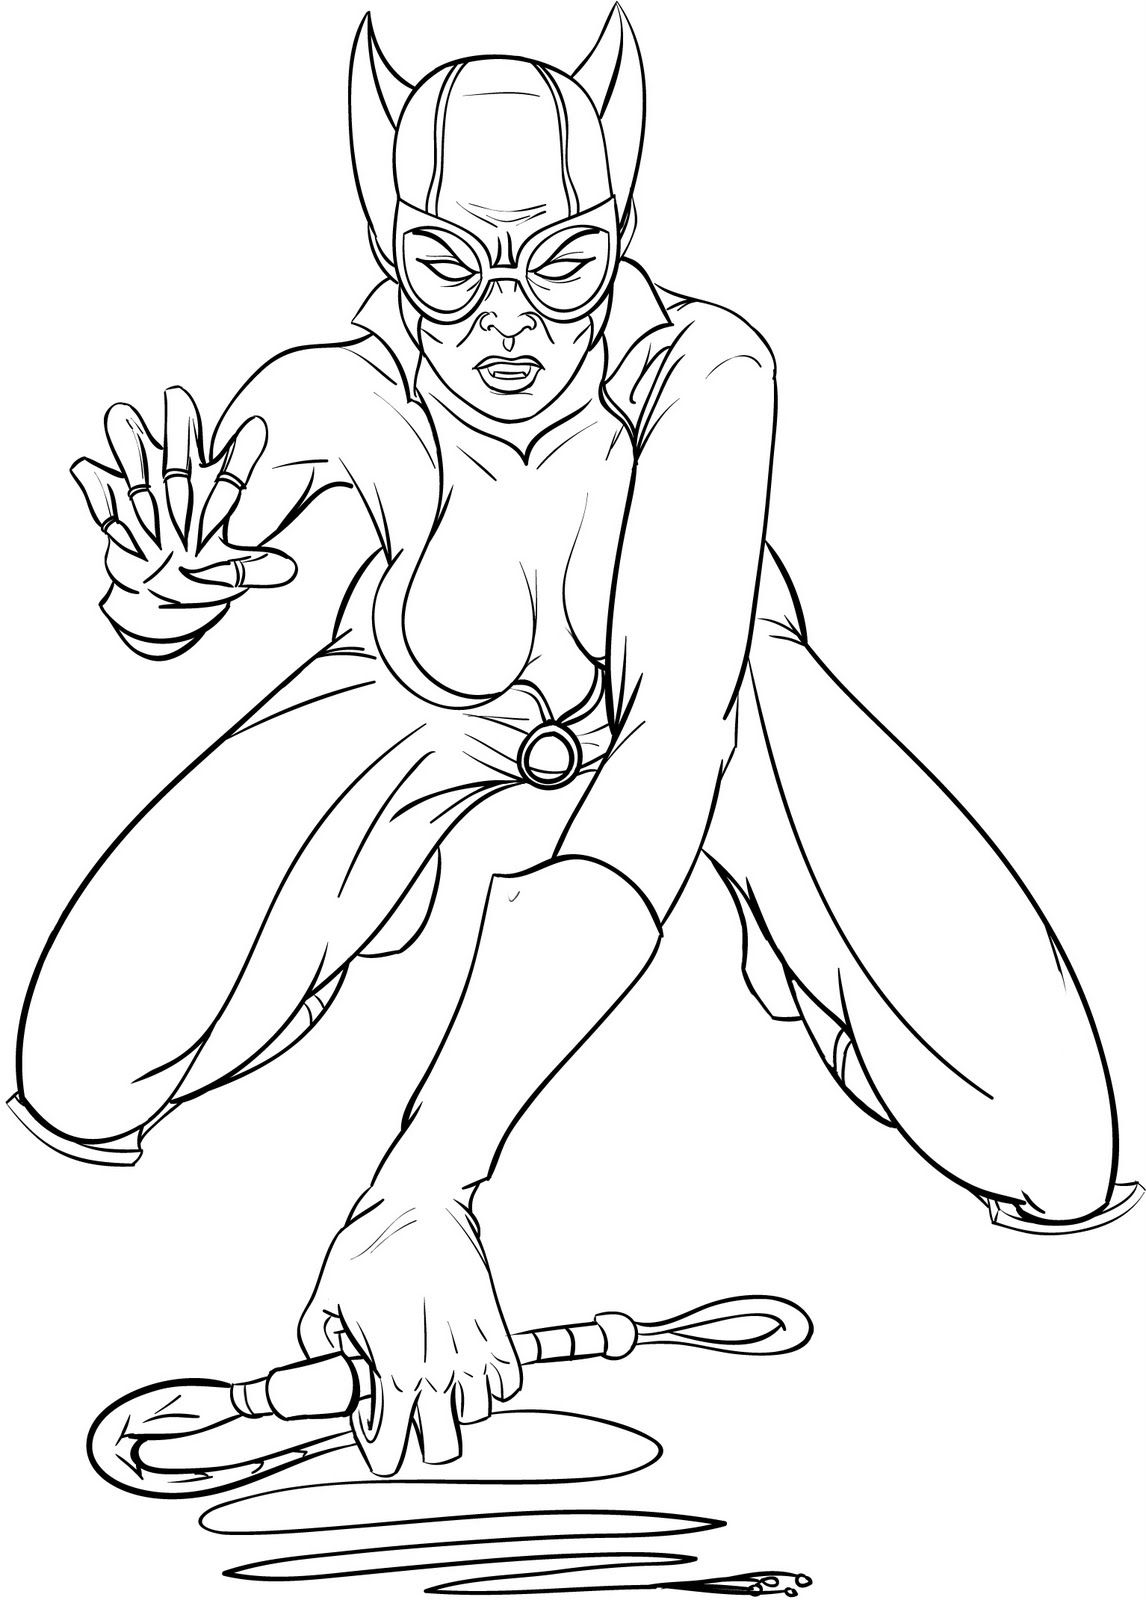 Catwoman Coloring Picture For Kids Coloring Pics Coloring Pages Coloring Pictures Catwoman